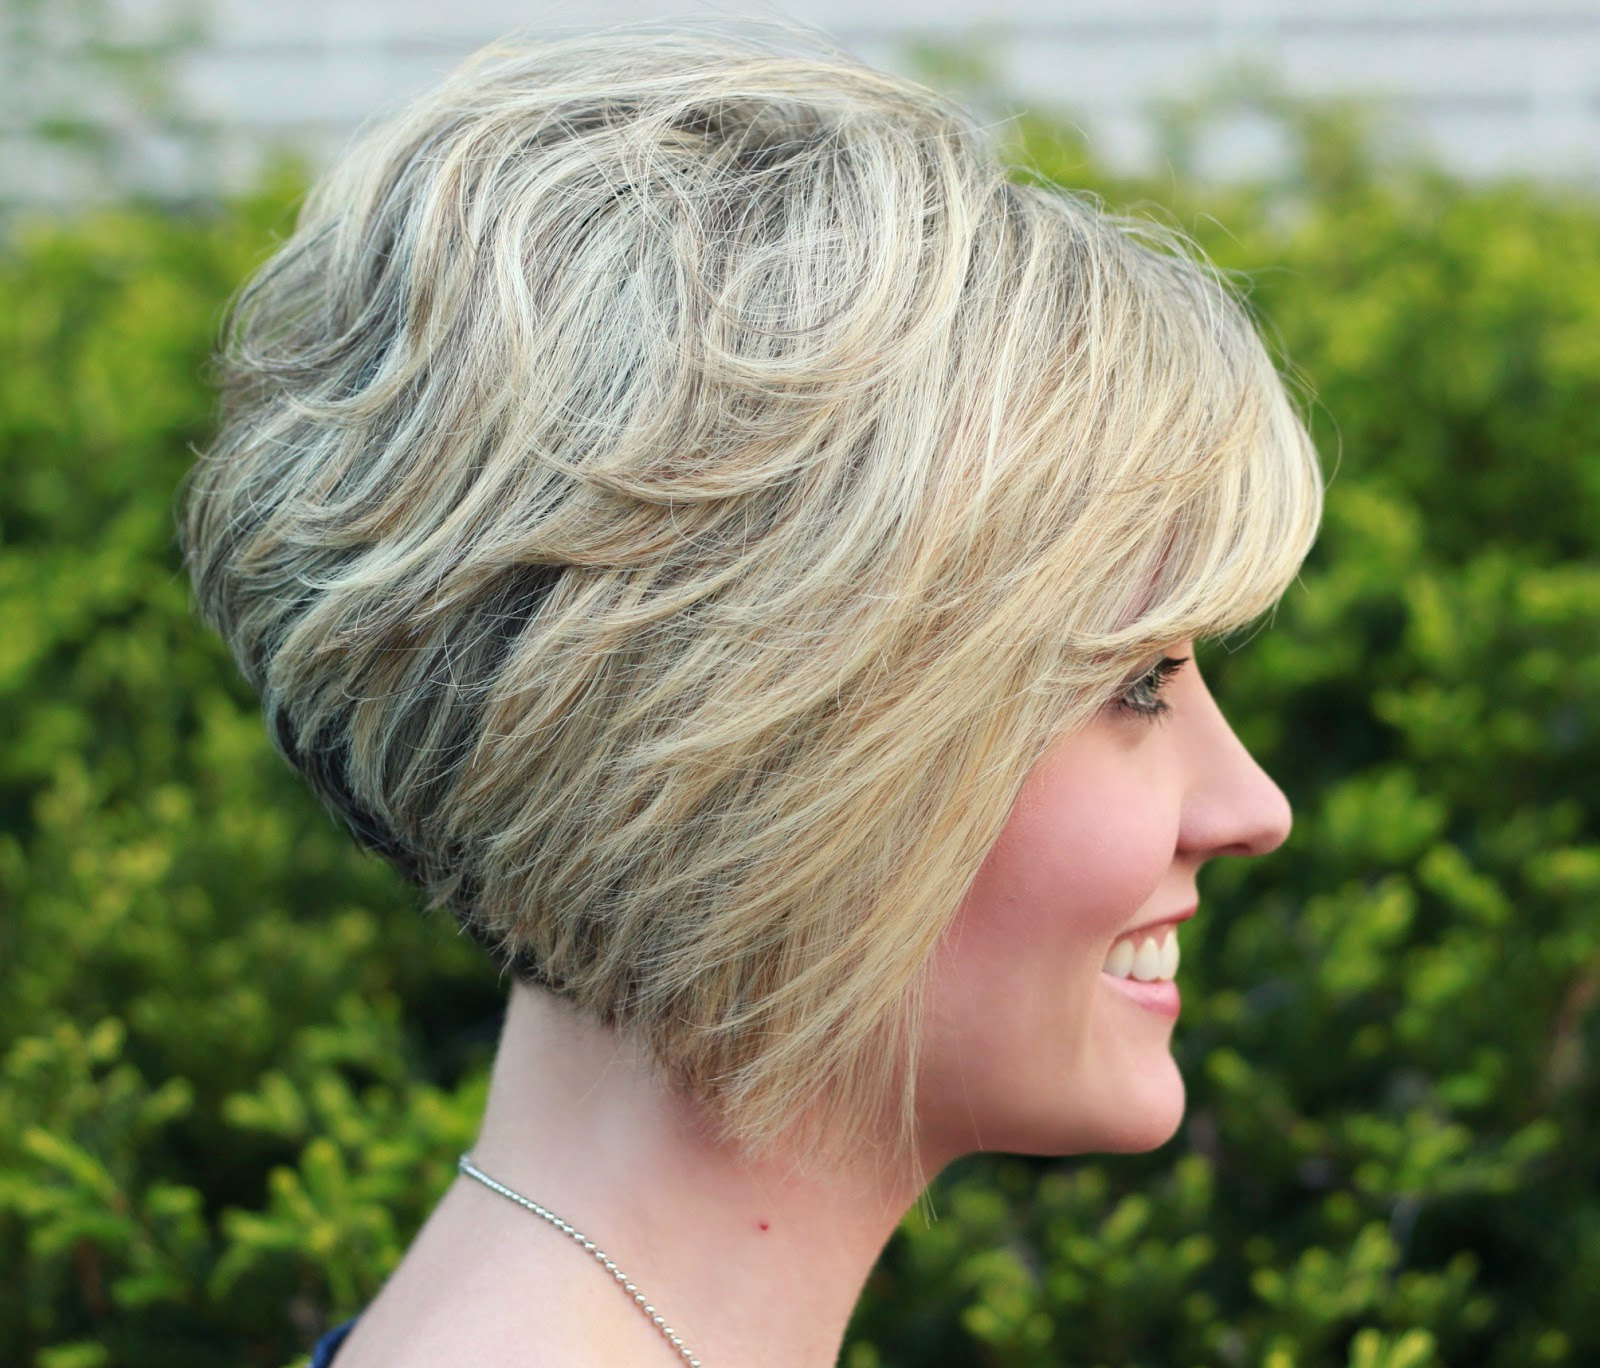 Short Curly Inverted Bob Hairstyles 22 Cute Inverted Bob Hairstyles For Inverted Short Haircuts (View 25 of 25)